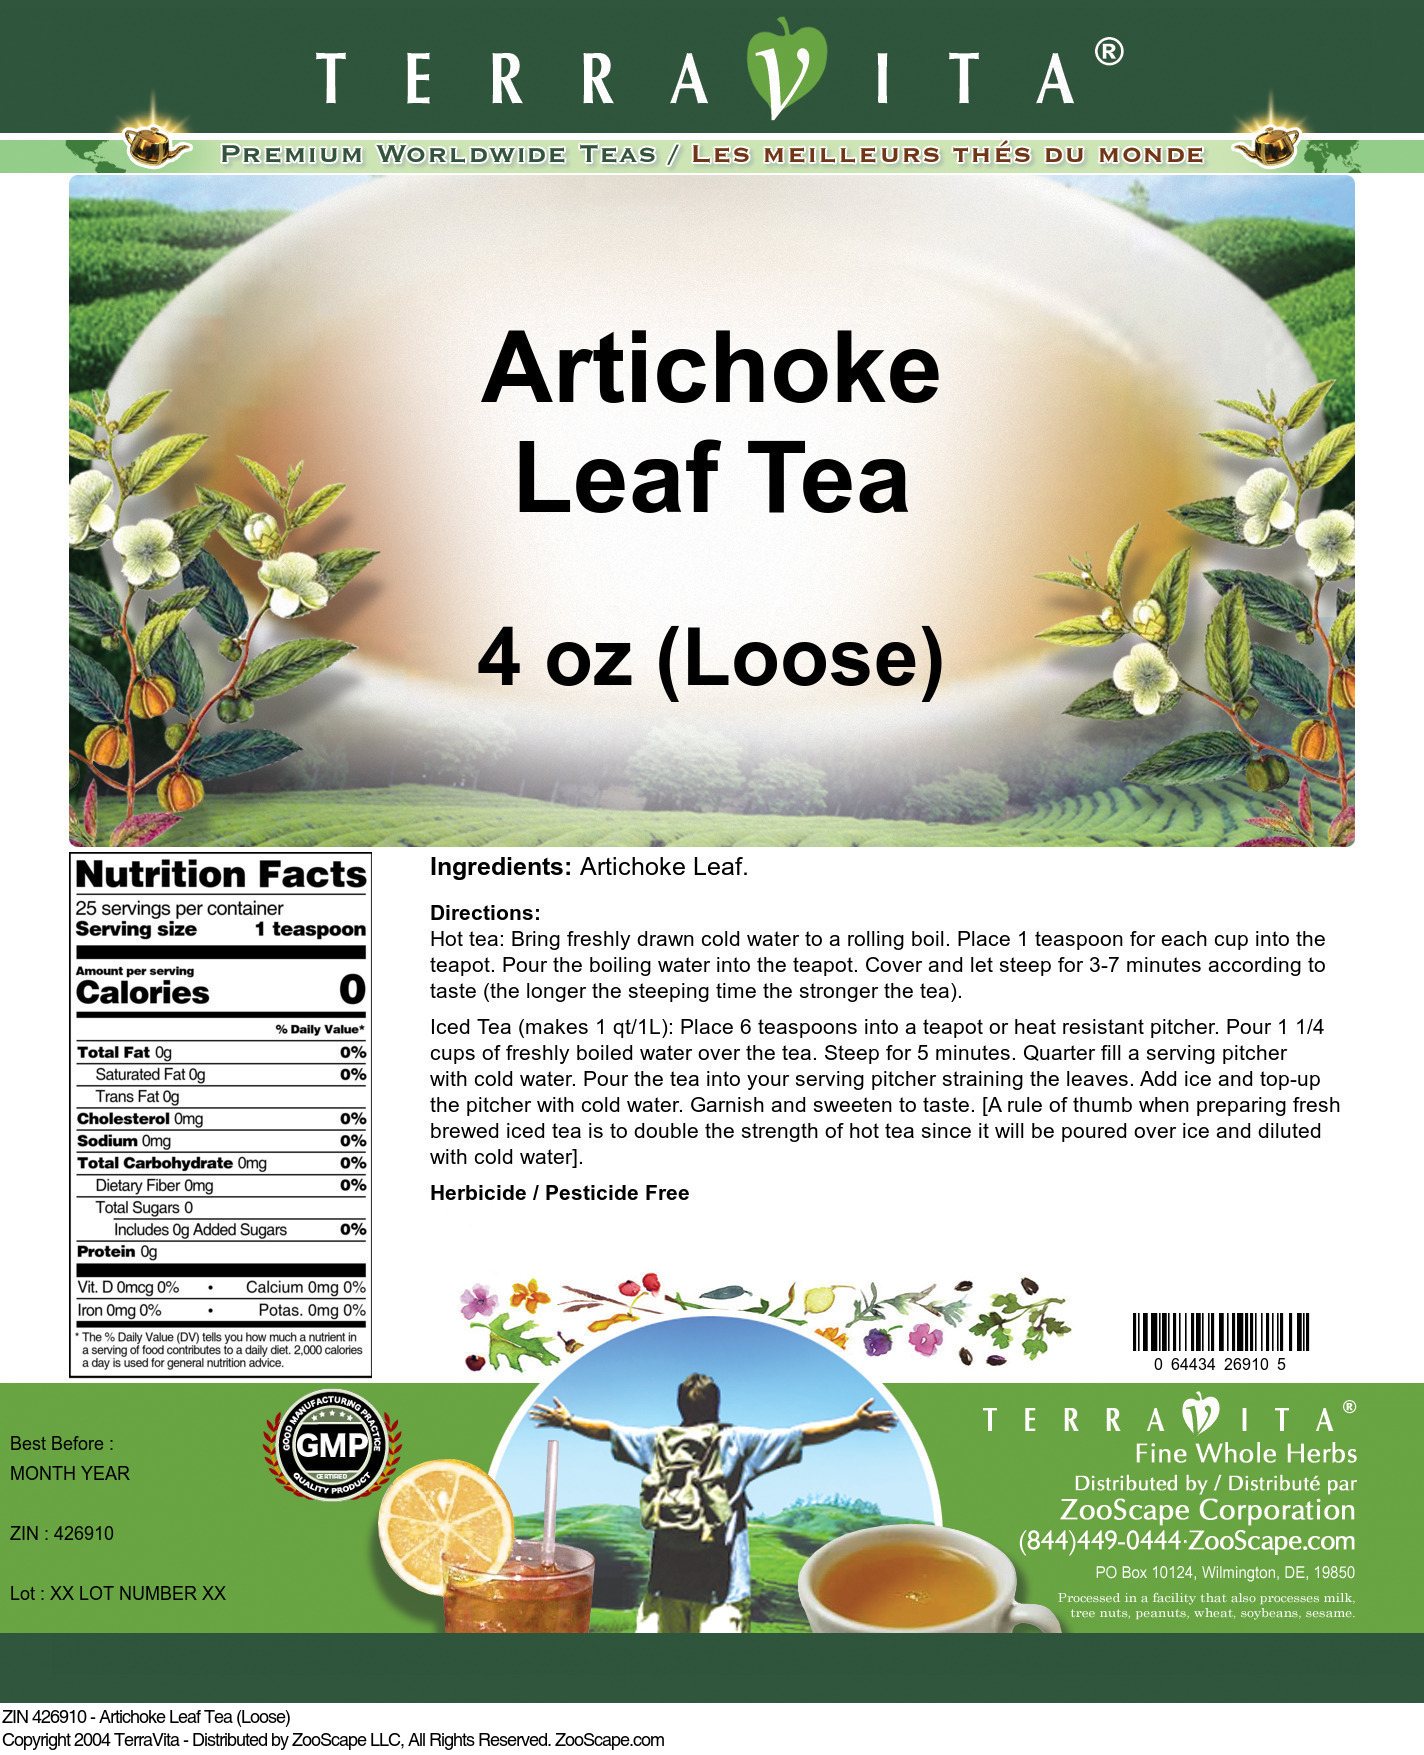 Artichoke Leaf Tea (Loose) - Label